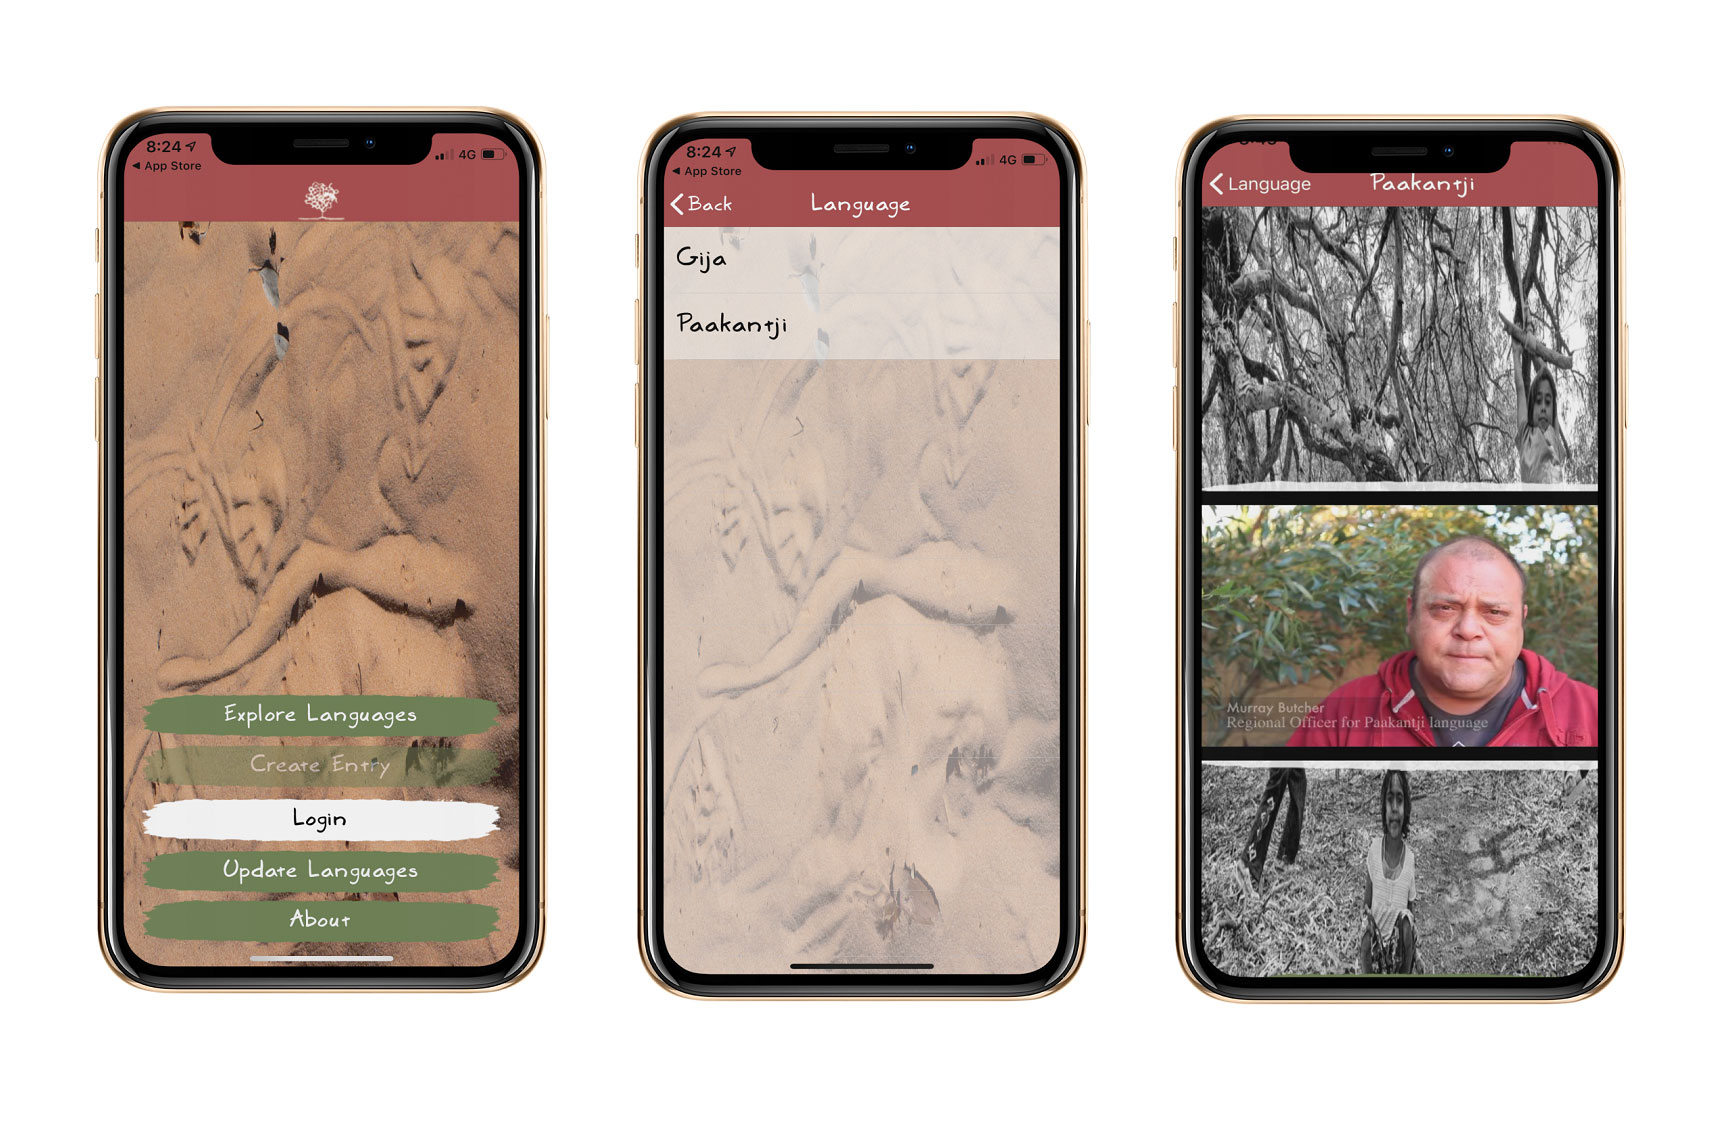 iphone-xs-mockup-sharing-app